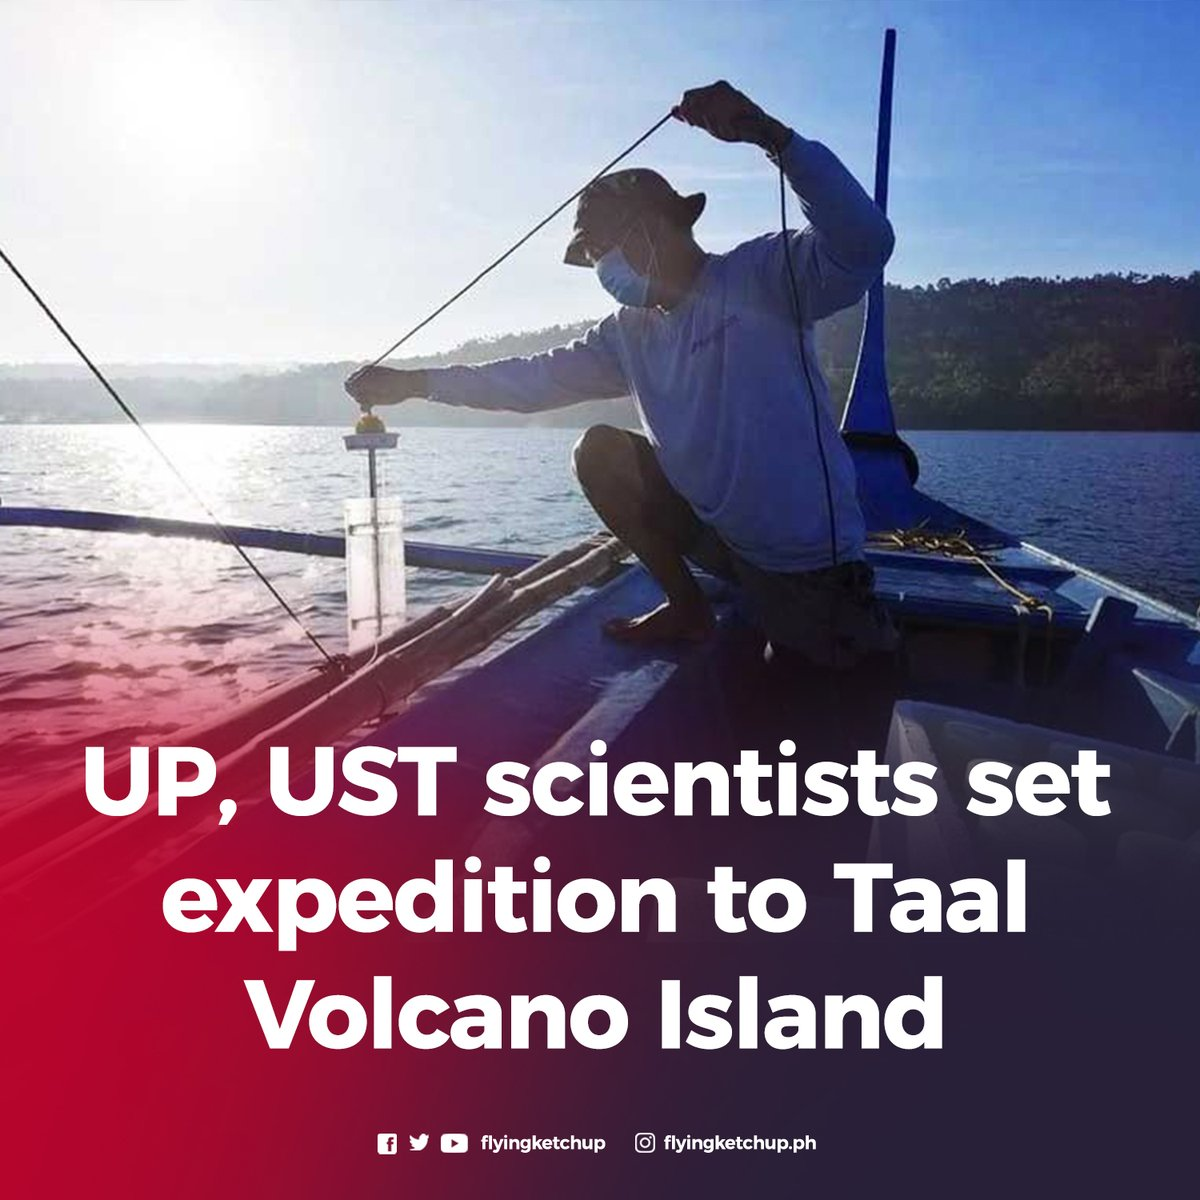 Under the Agham ng Bulkang Taal program, the teams will be conducting studies on how they can help the landowners, lakeshore communities and LGUs manage and sustain the lake and volcano resources. https://t.co/nFBjY9OKZq https://t.co/Zkkb7yKpWs